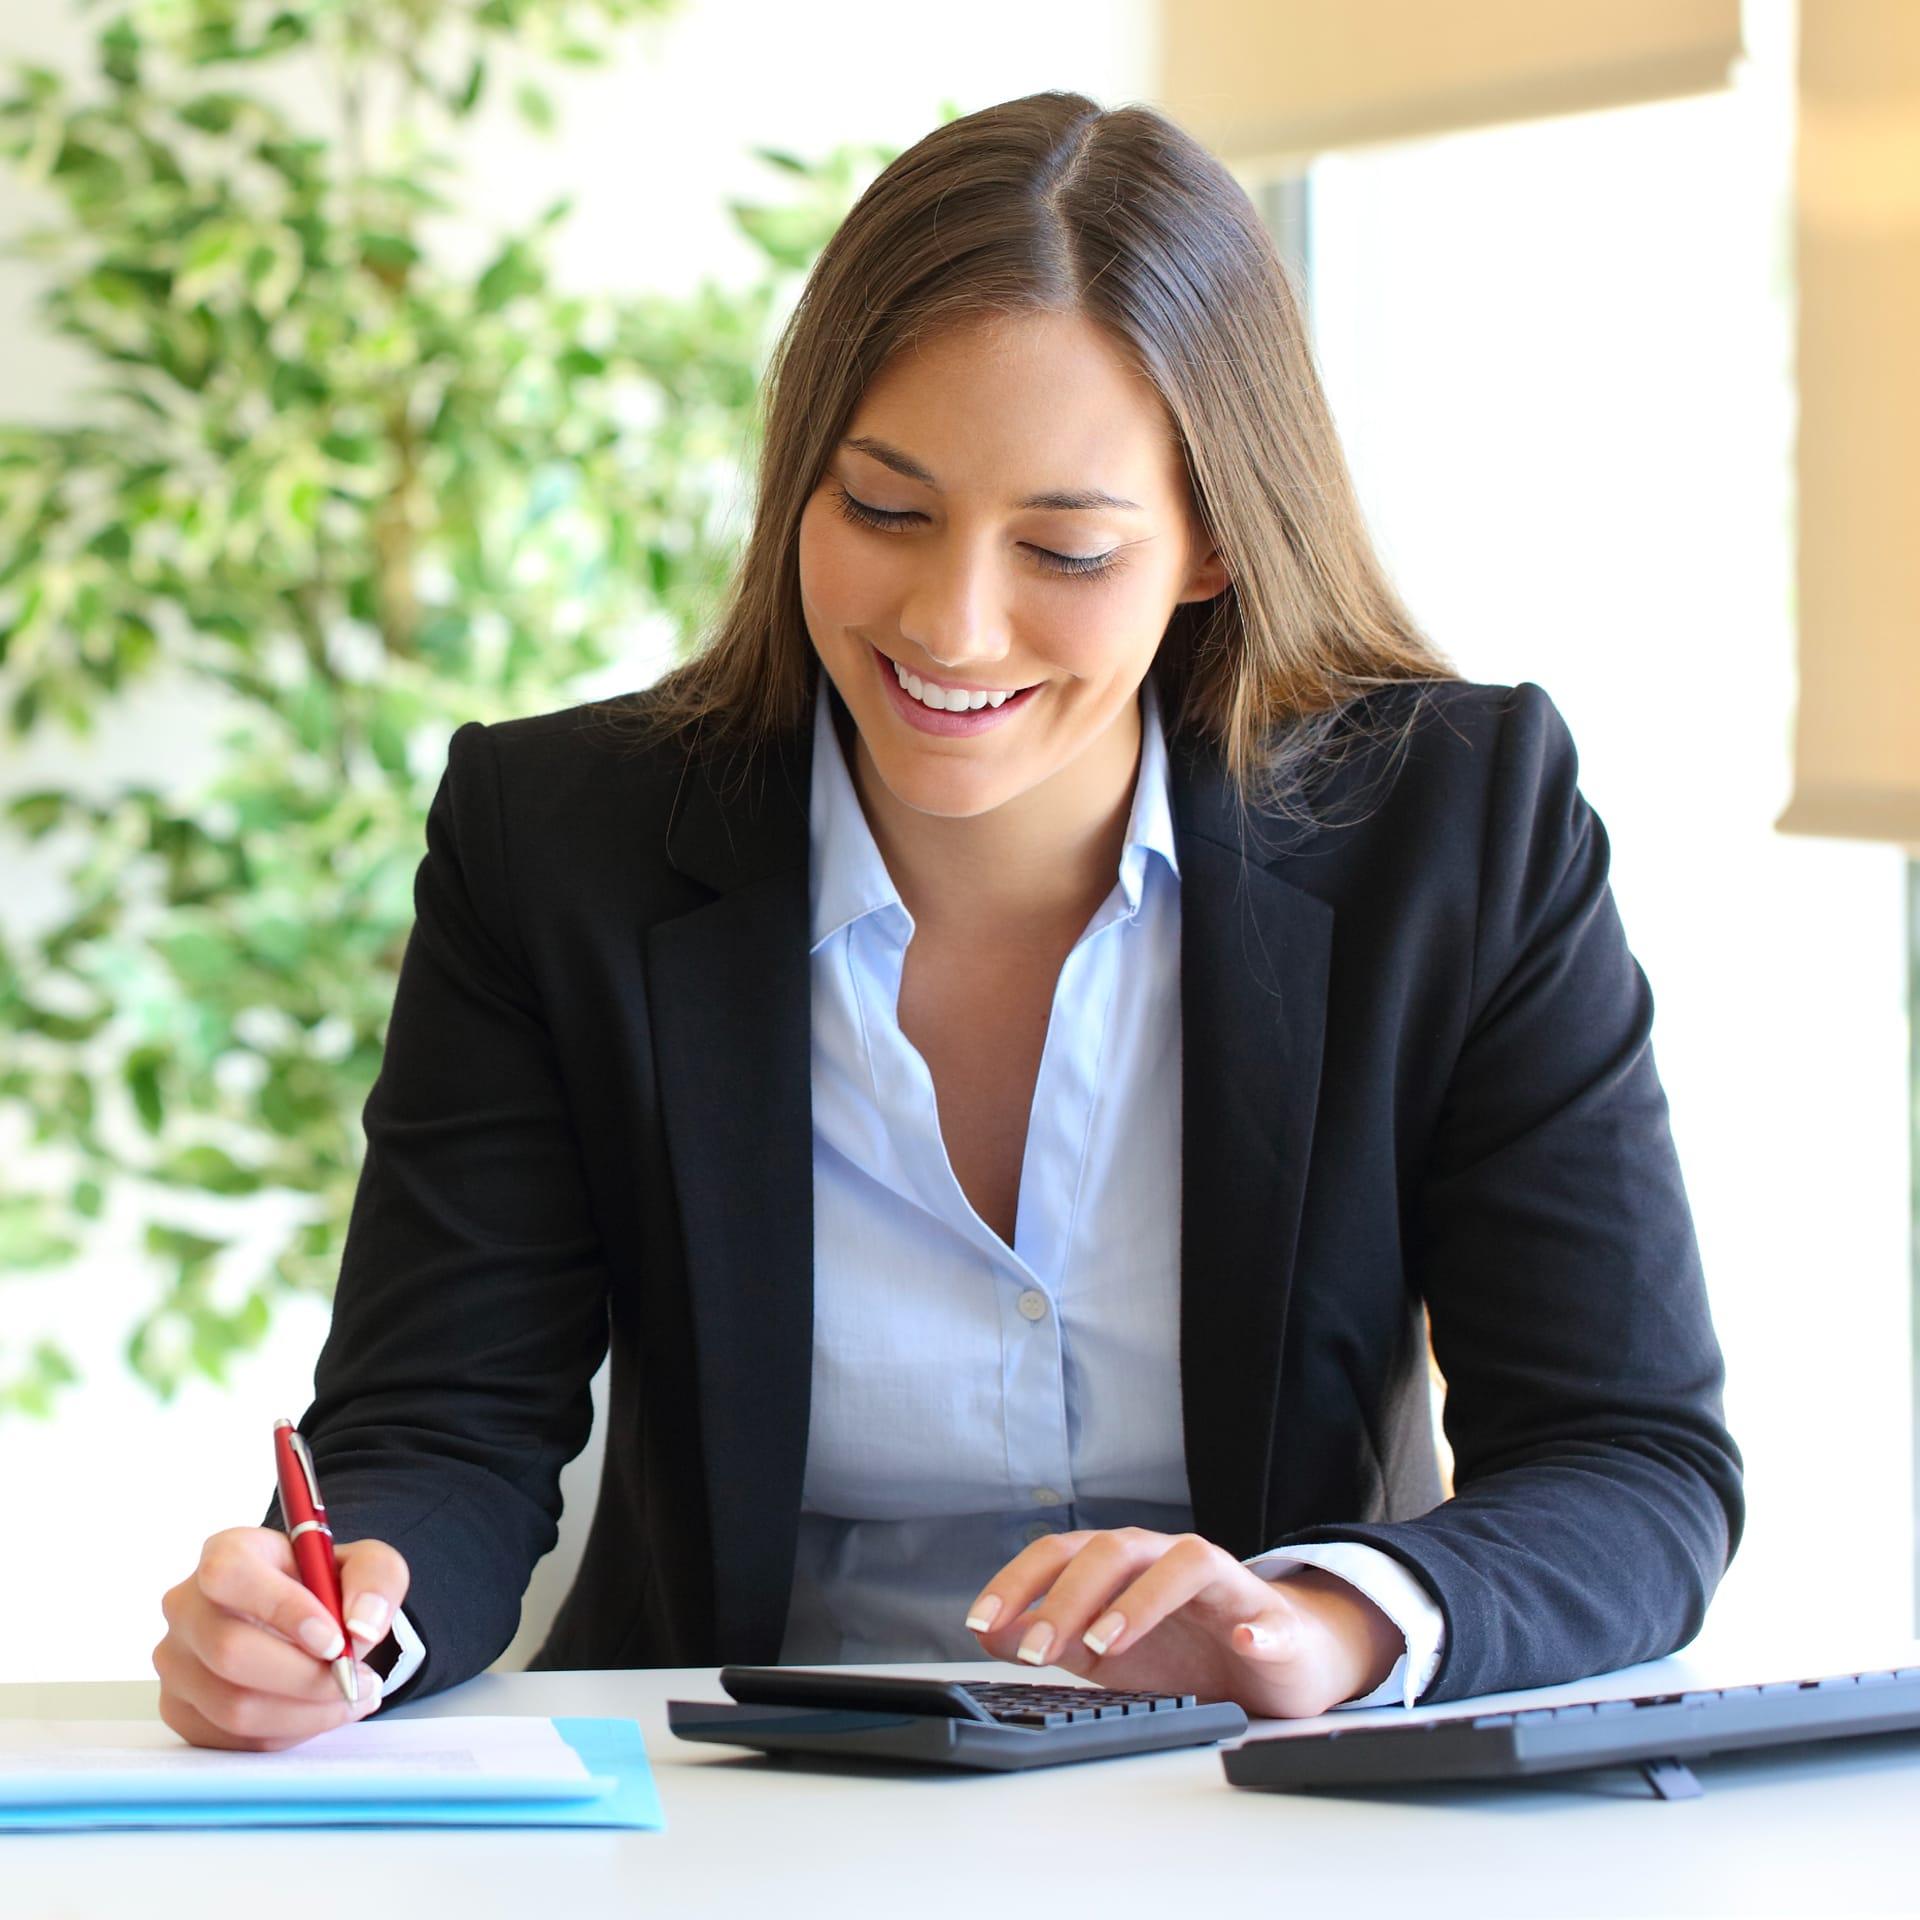 Accounting & Finance Professional